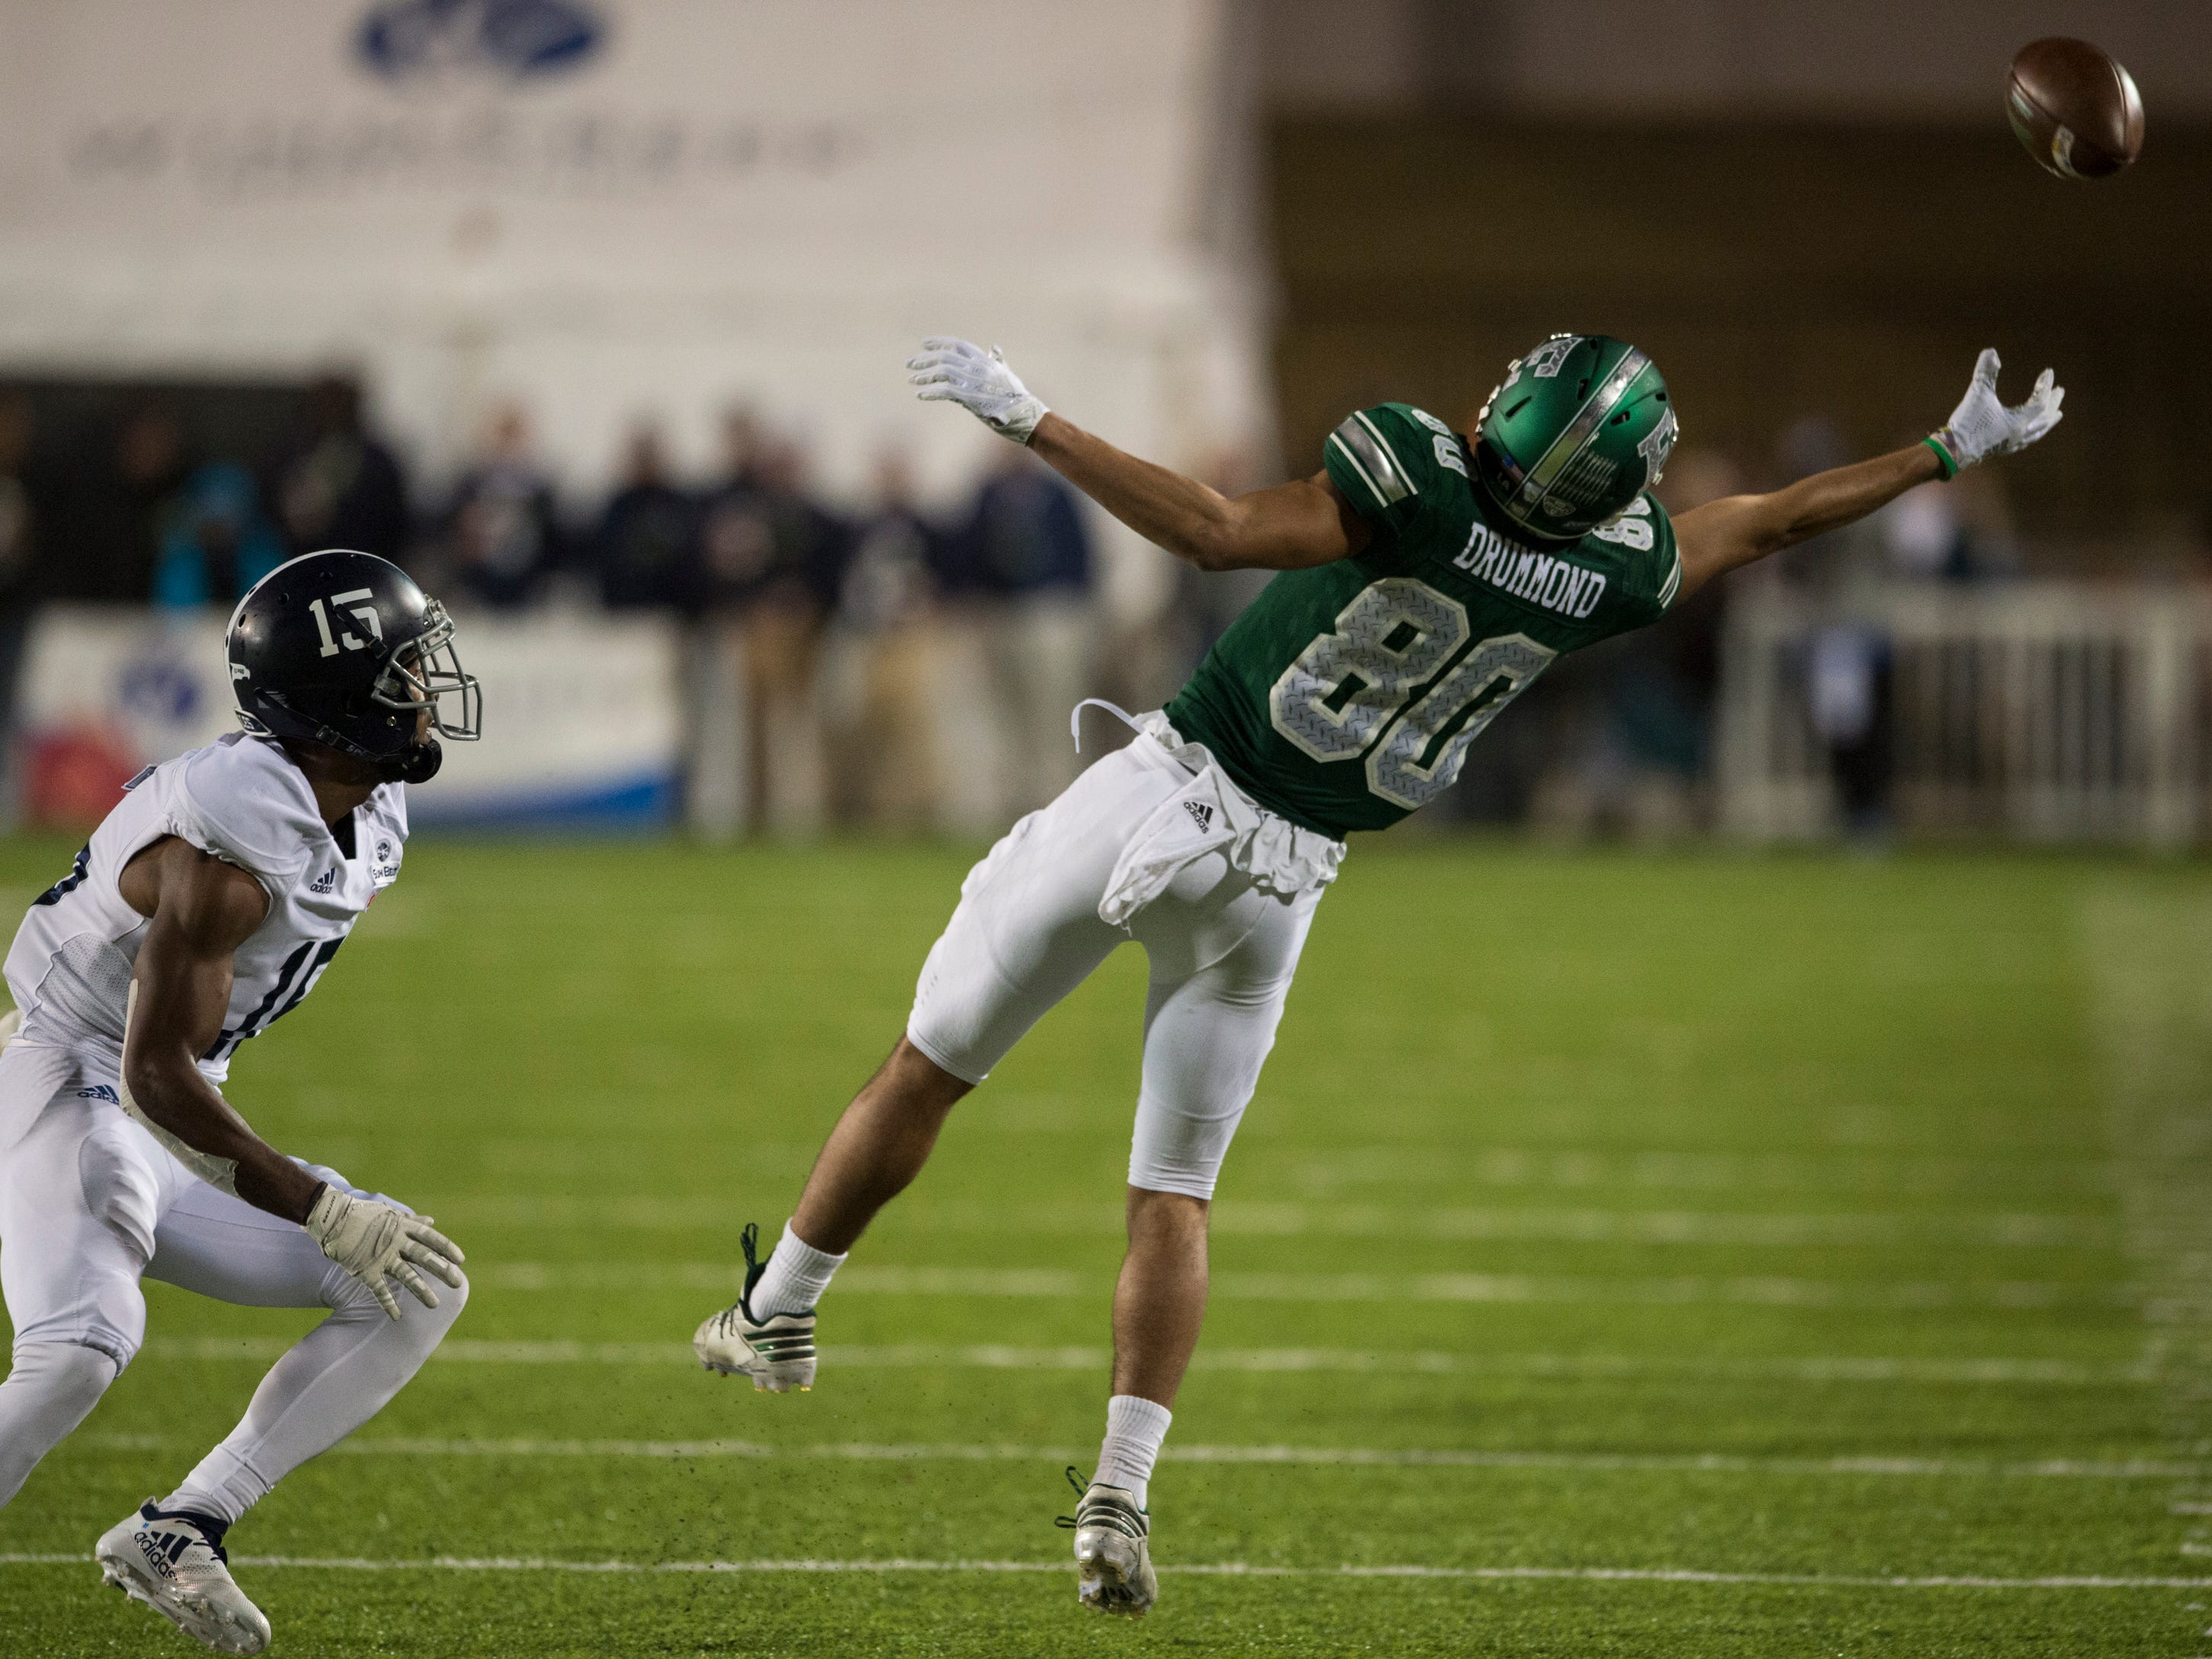 Eastern Michigan wide receiver Dylan Drummond (80) stretches out for a pass just wide of his grasp during the Camellia Bowl at Cramton Bowl in Montgomery, Ala., on Saturday, Dec. 15, 2018. Georgia Southern defeated Eastern Michigan 23-21.